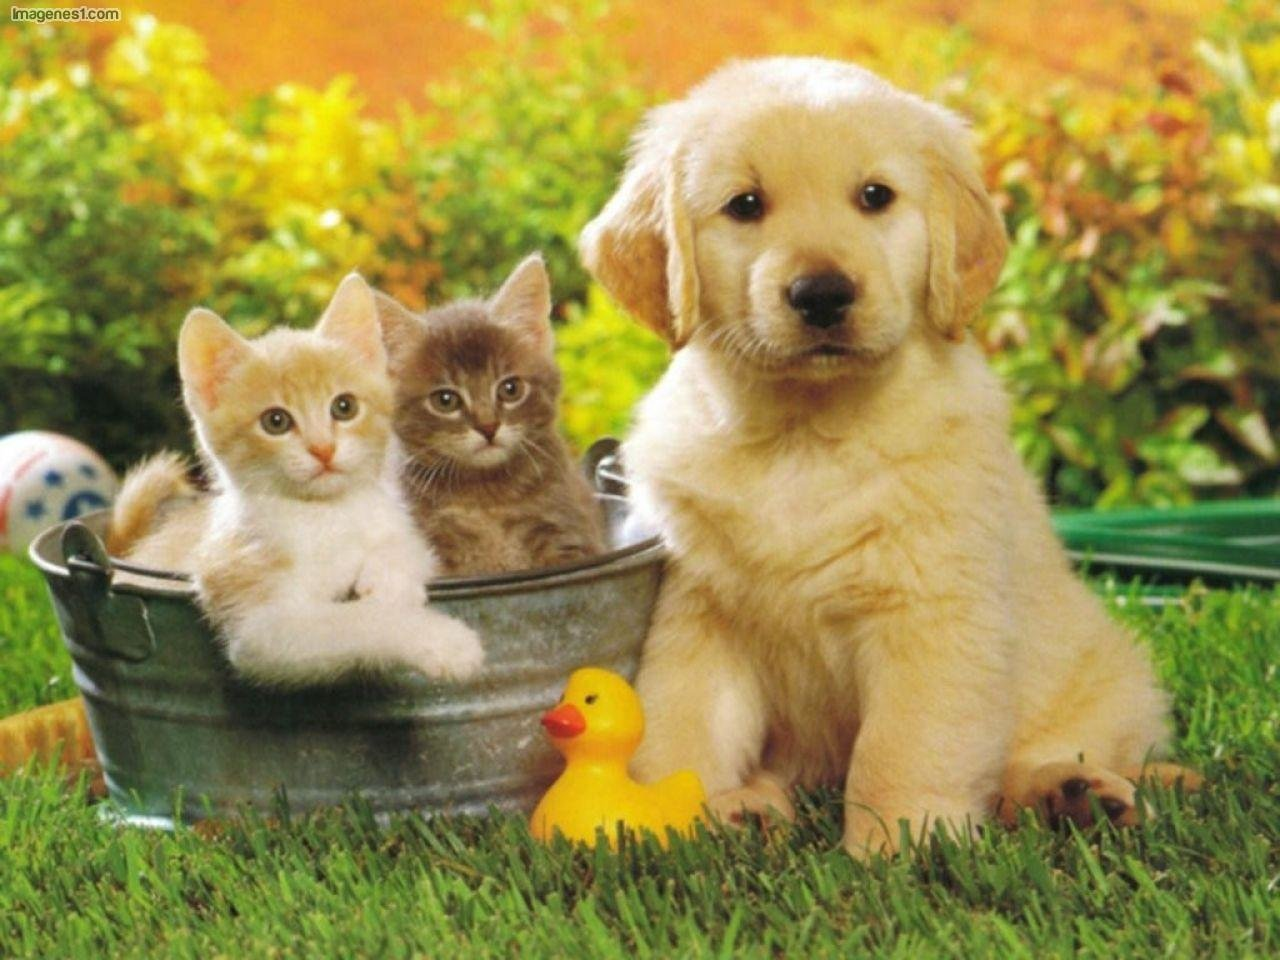 High resolution Cat and Dog hd 1280x960 wallpaper ID:125326 for computer